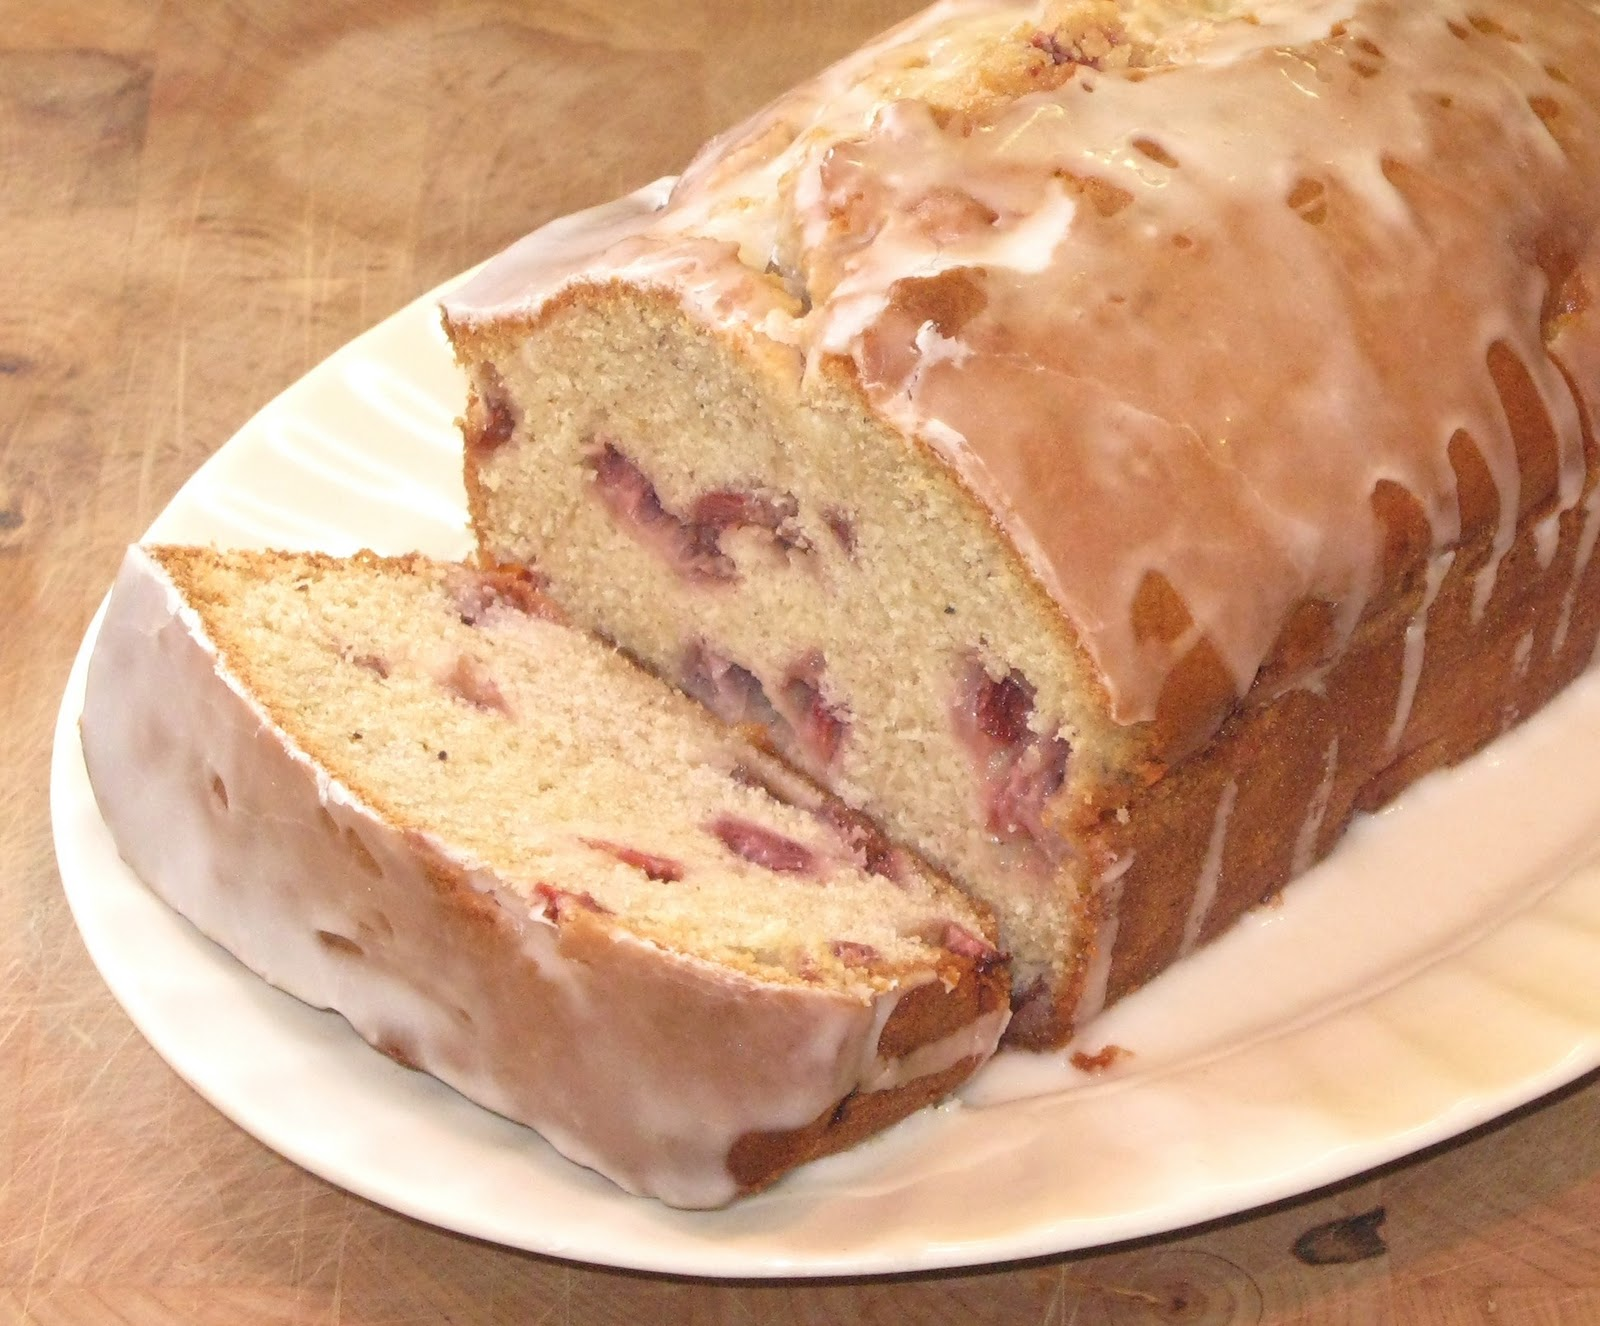 lick-a-plate: Strawberry Cardamom Bread